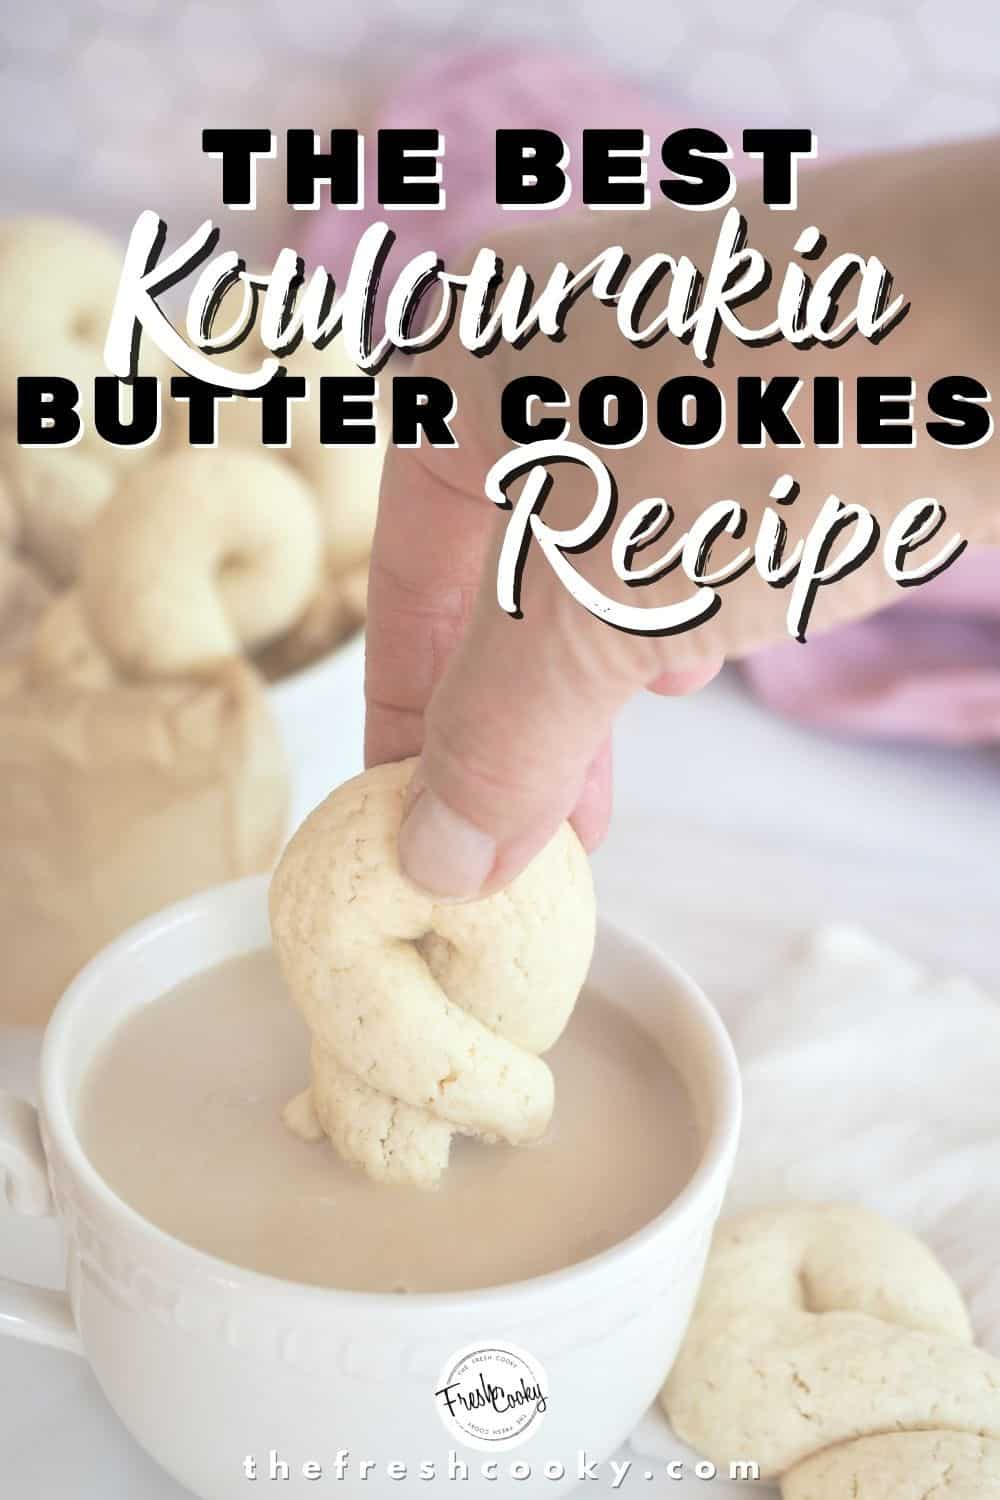 Greek Butter Cookies also known as Koulourakia are an easy to make  butter sugar cookie shaped into traditional twists, crescents and other forms. A great cookie to make with kids. Perfect for holiday gatherings, Christmas cookie exchanges and Easter celebrations. #thefreshcooky #koulourakia #holidaybakingideas via @thefreshcooky